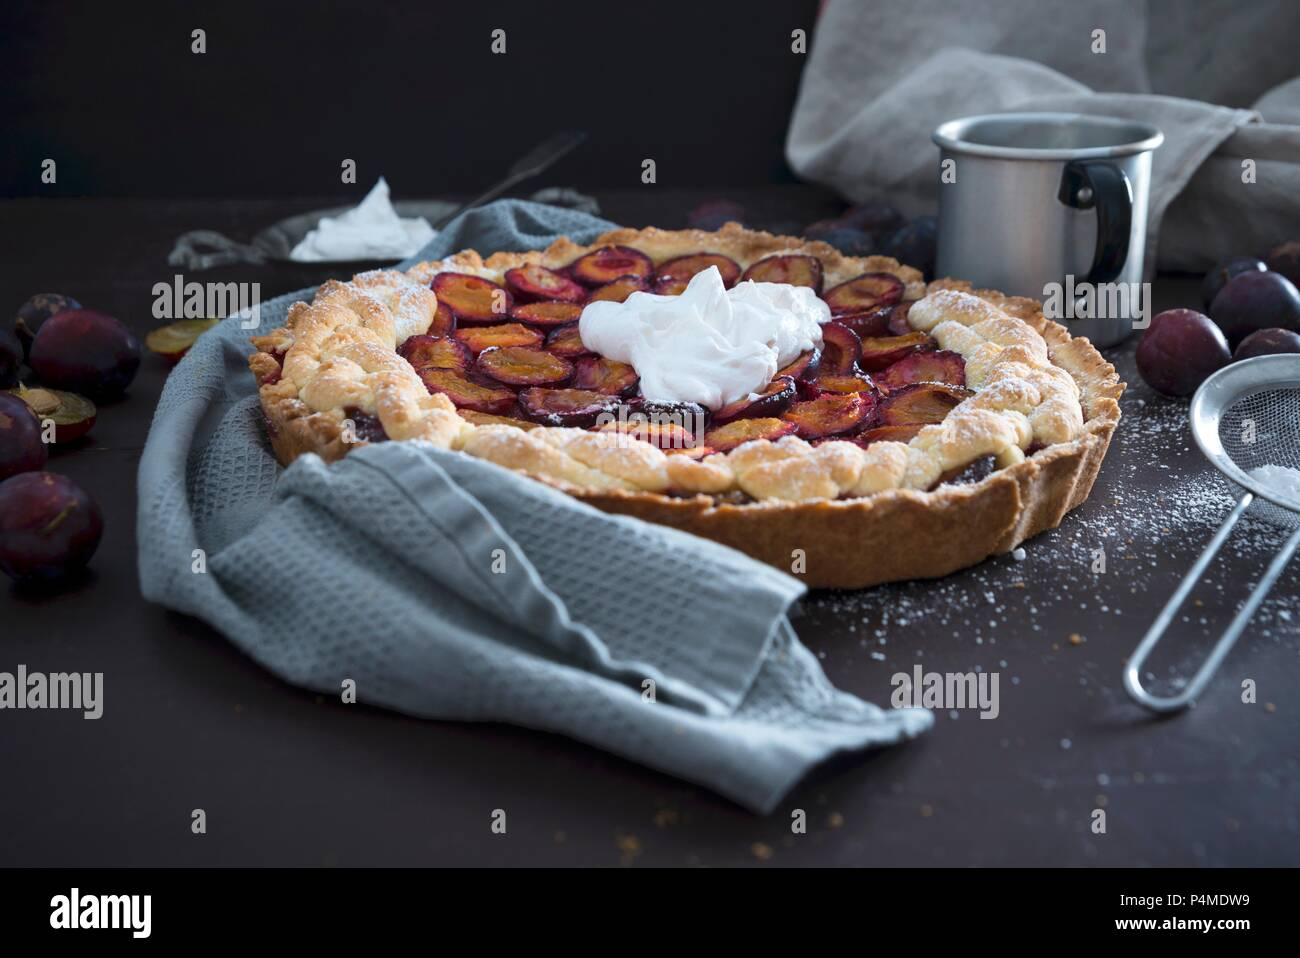 A plum cake with vegan soya whipped cream - Stock Image